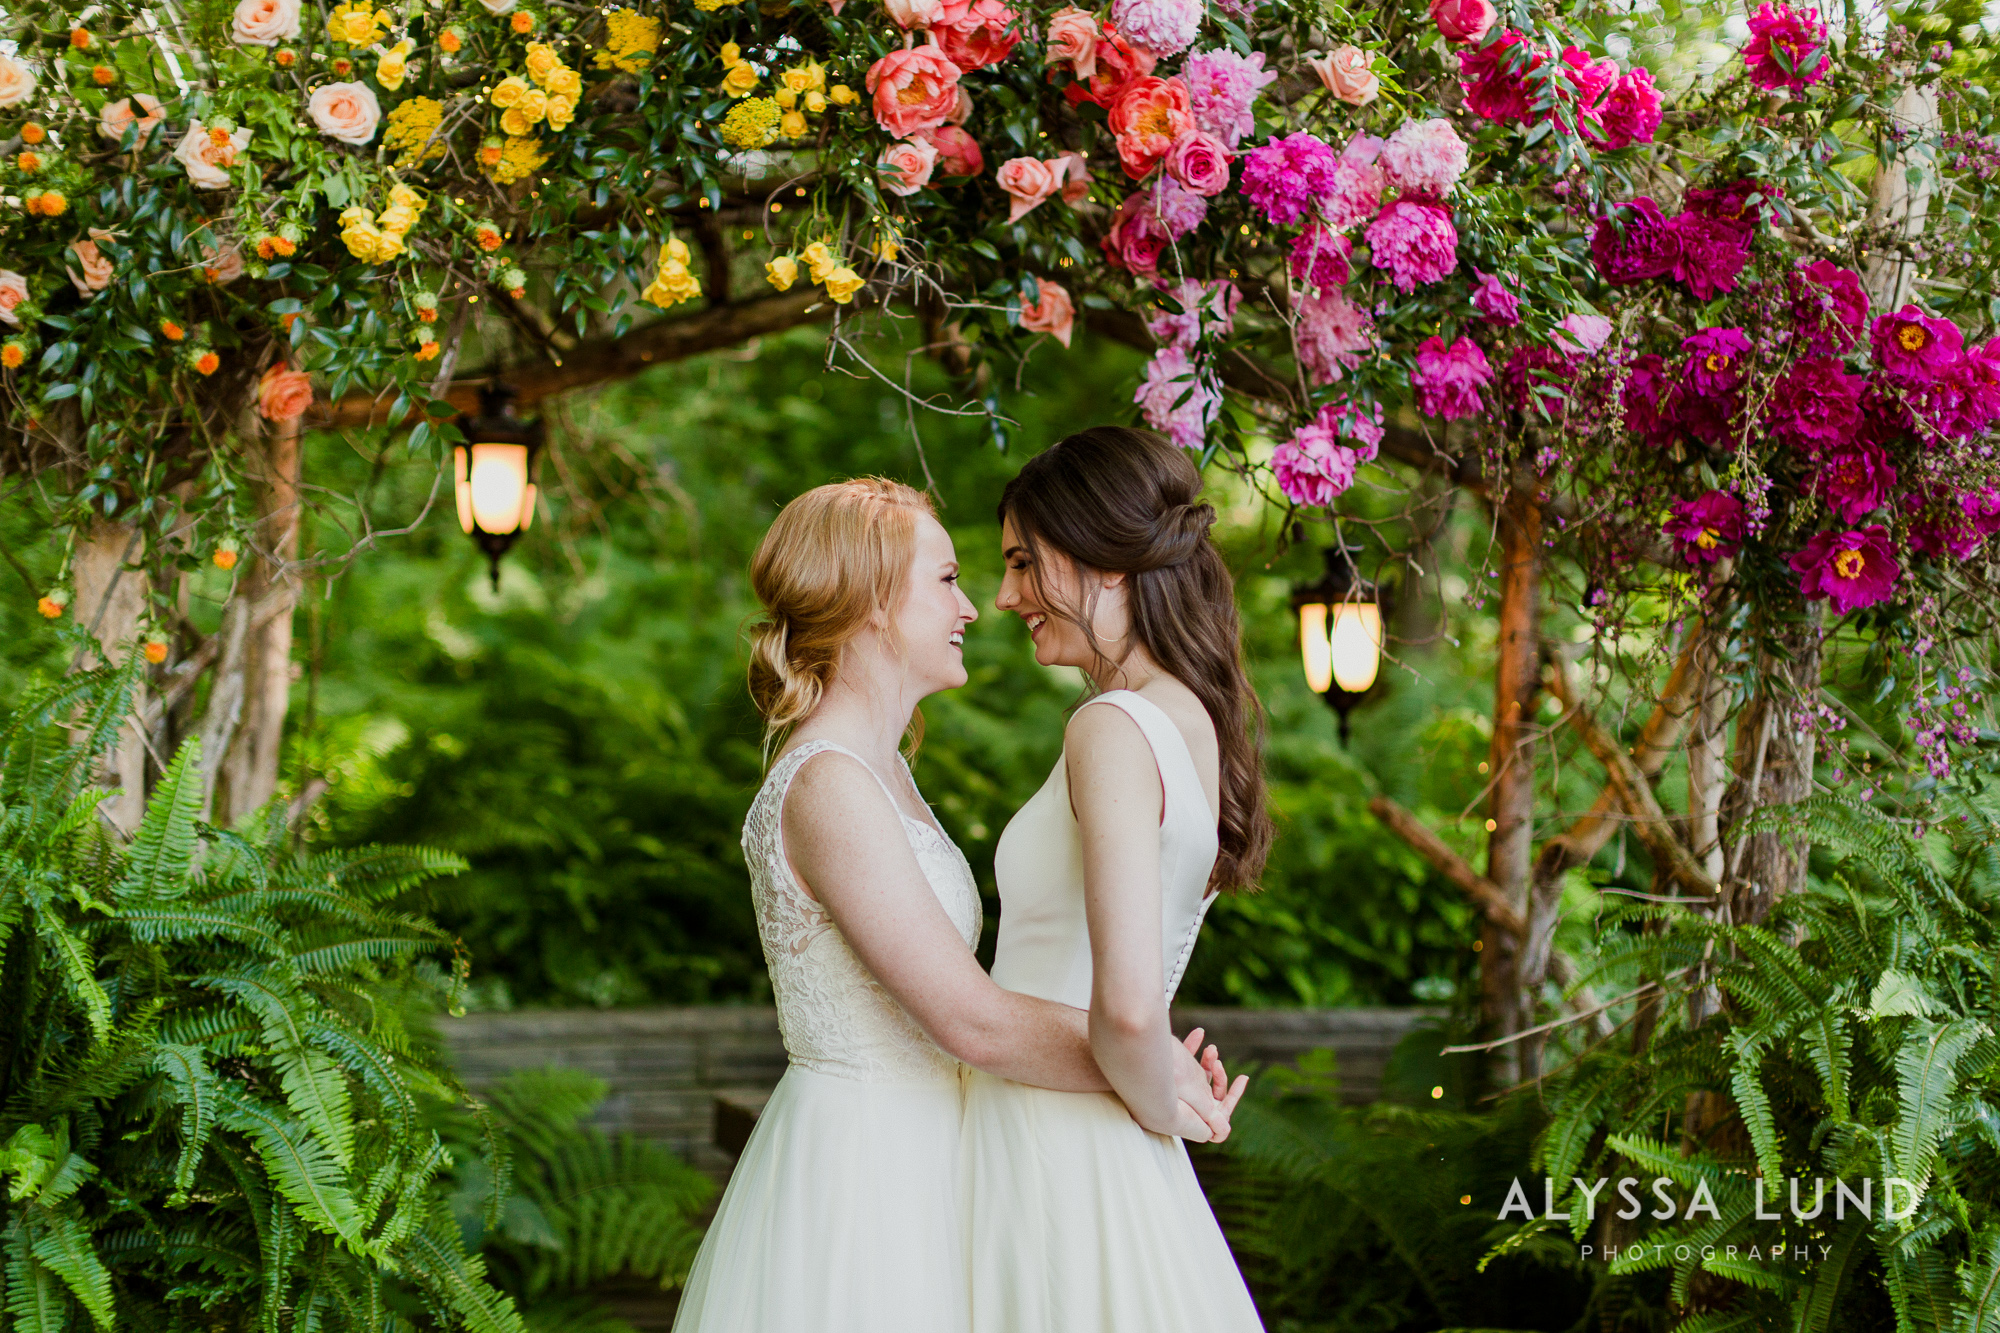 Queer wedding photography inspiration by Alyssa Lund Photography-22.jpg